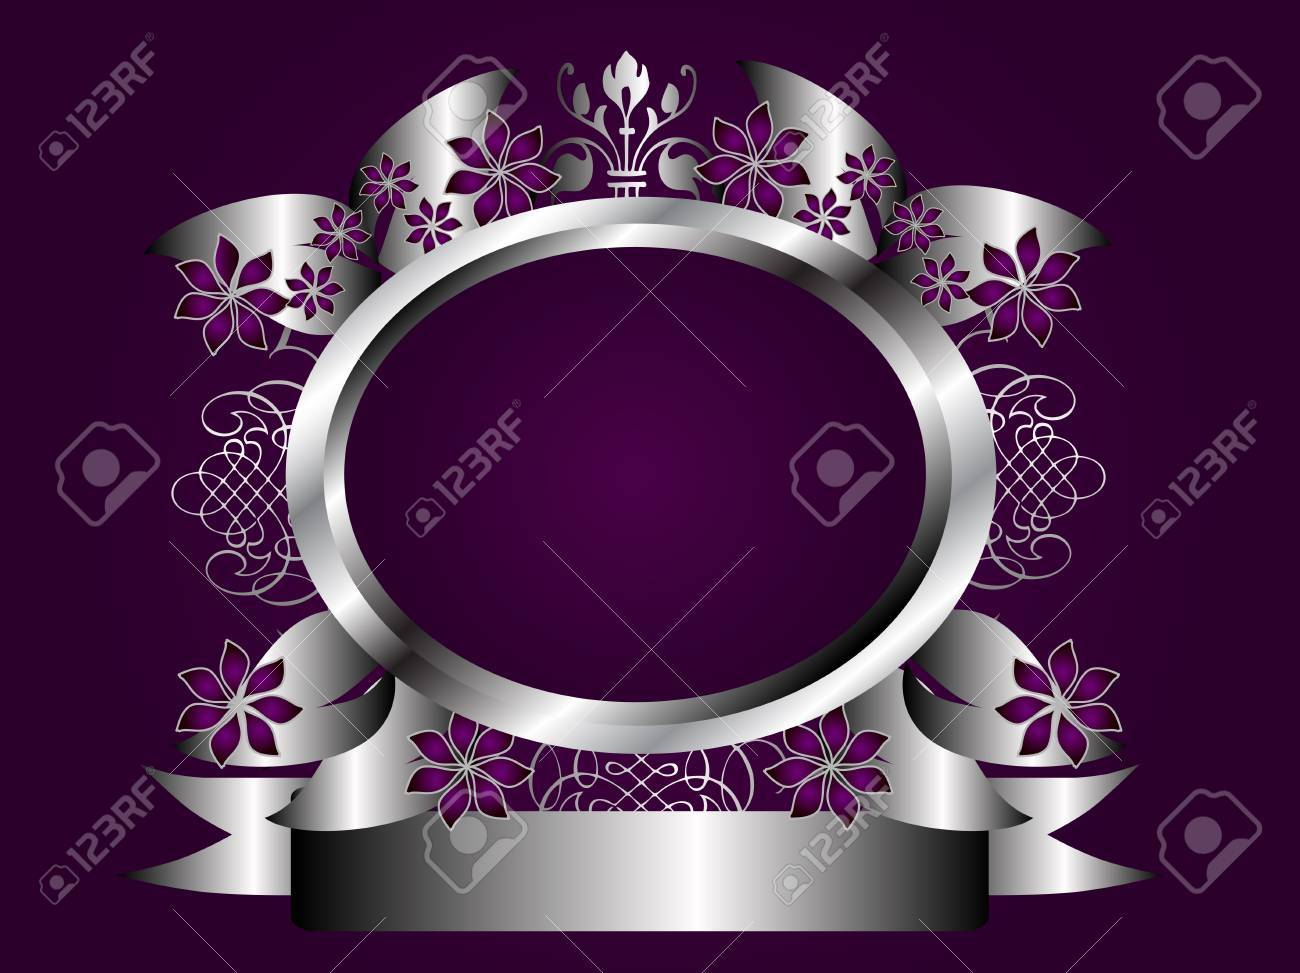 A silver floral design with room for text on a rich deep purple background Stock Vector - 8395438